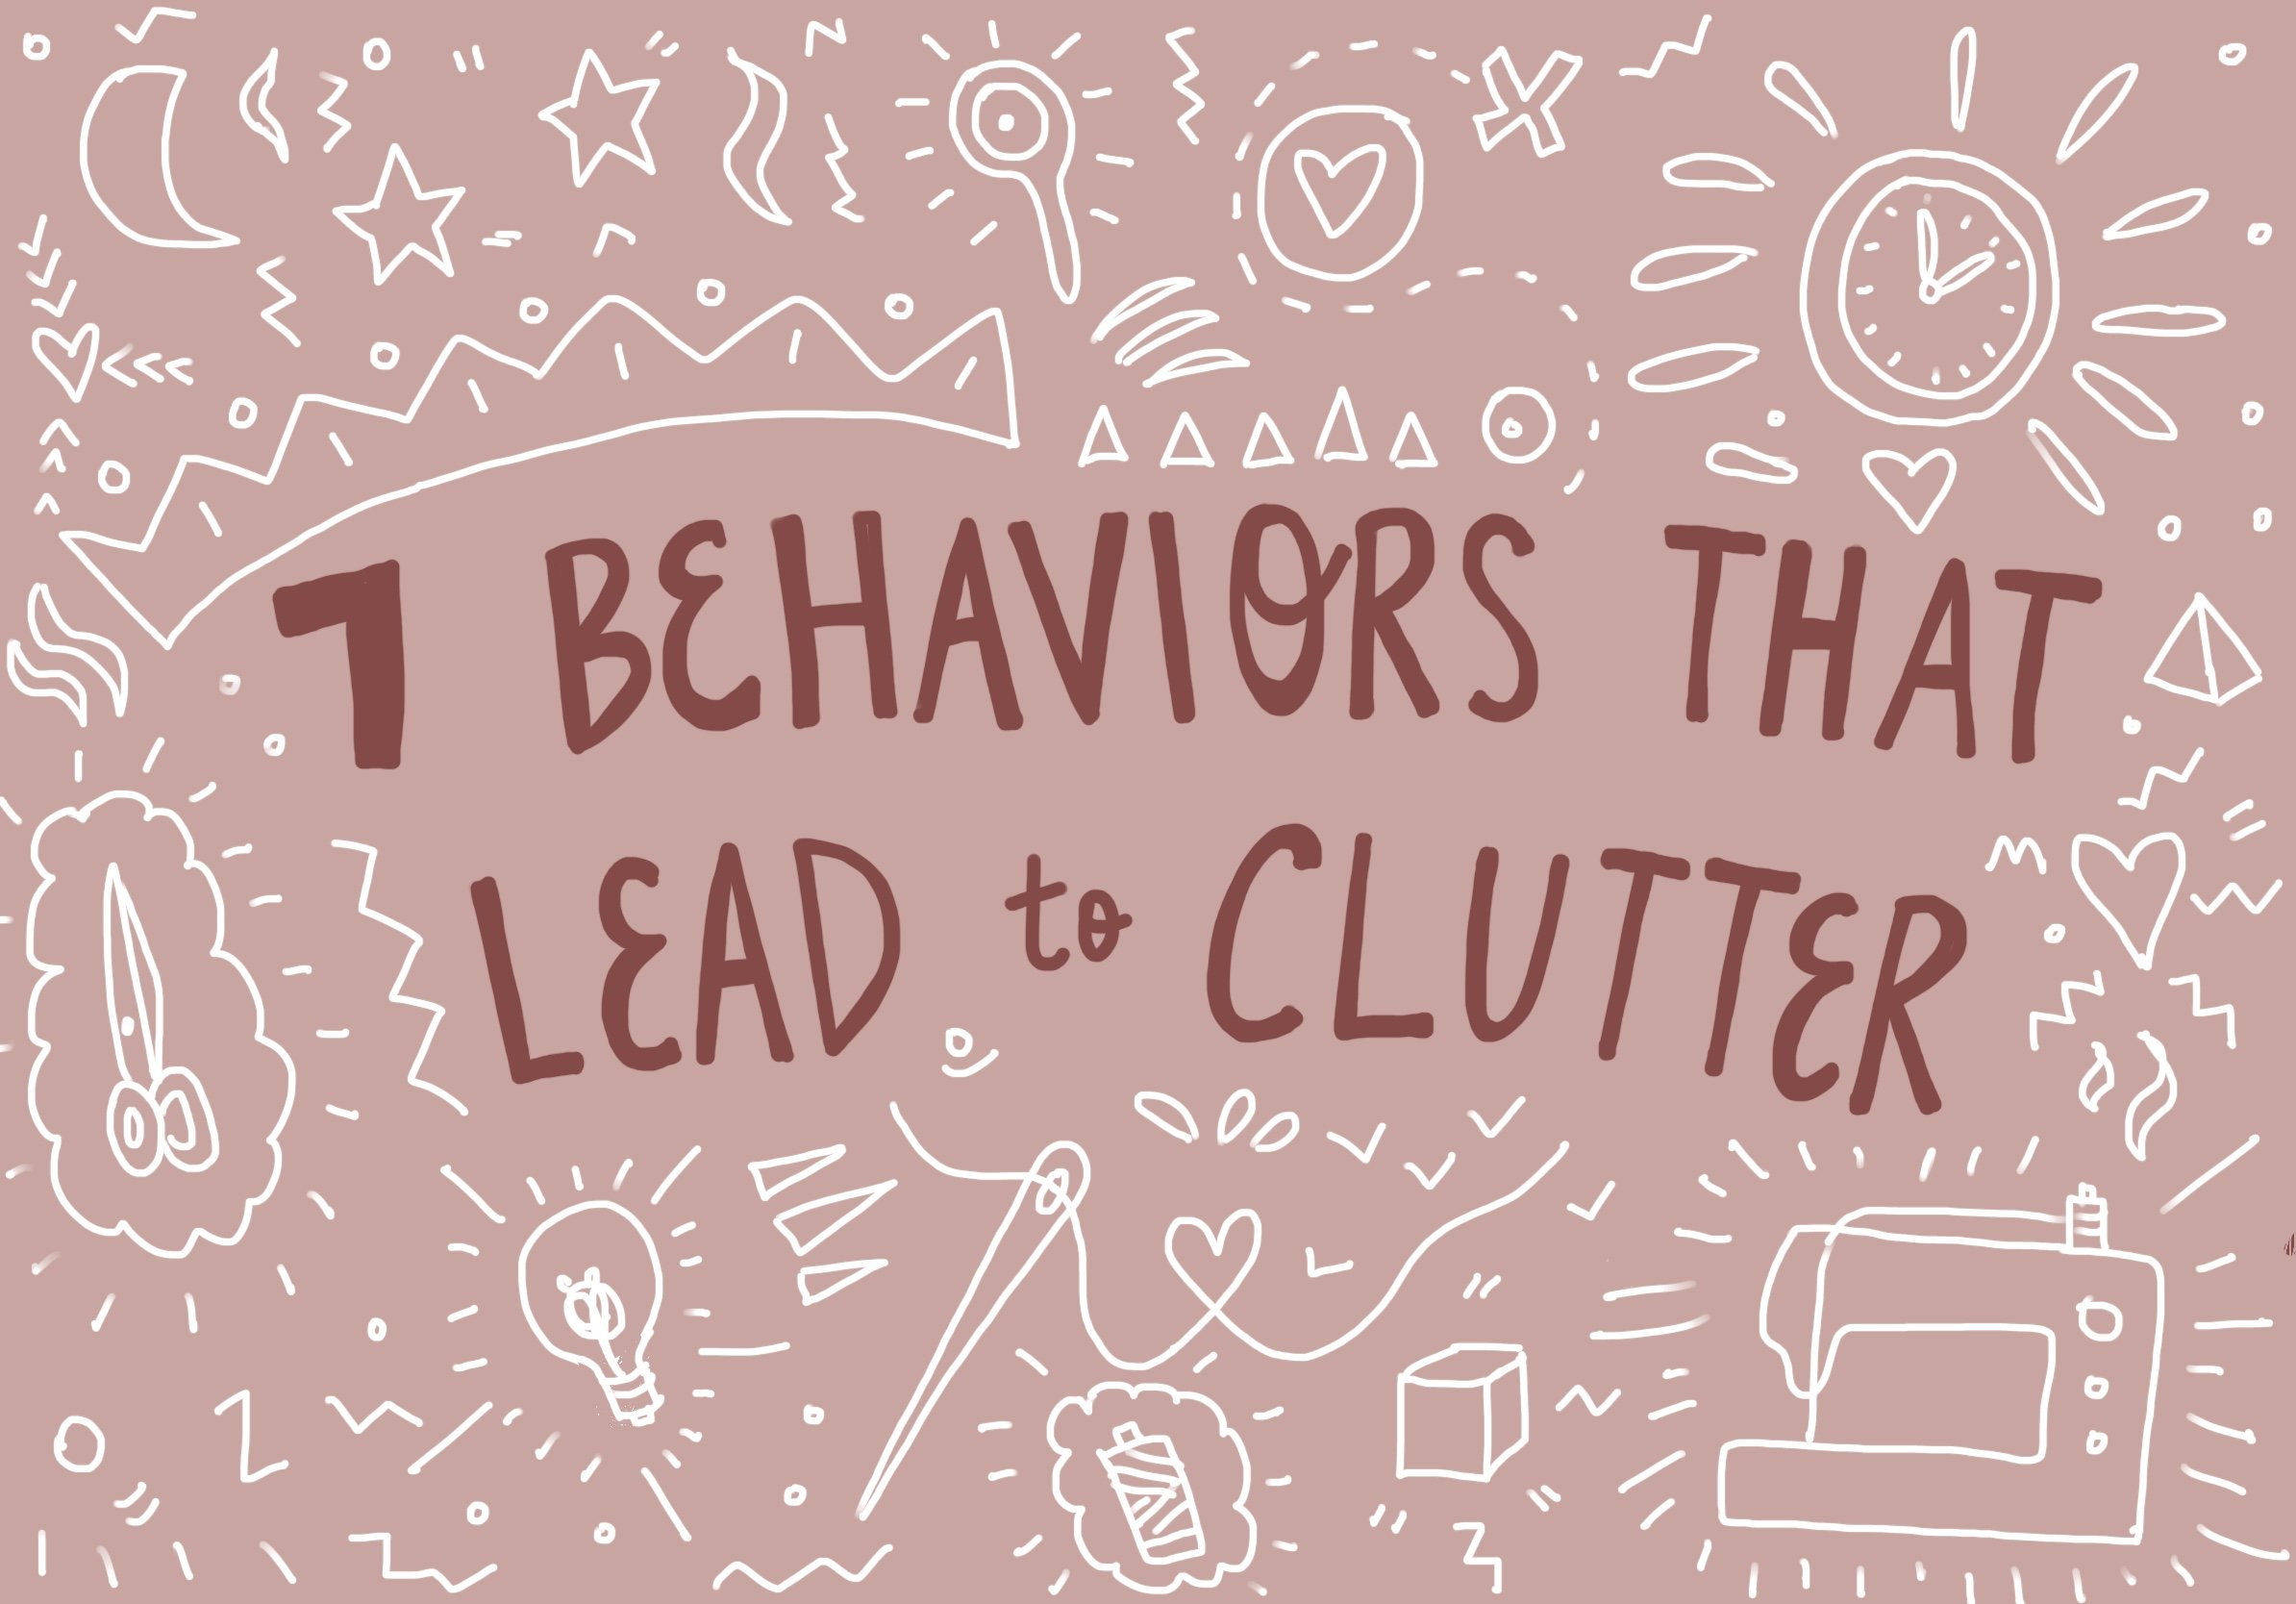 7 behaviors that lead to clutter feelgood fibers Nadia arbach